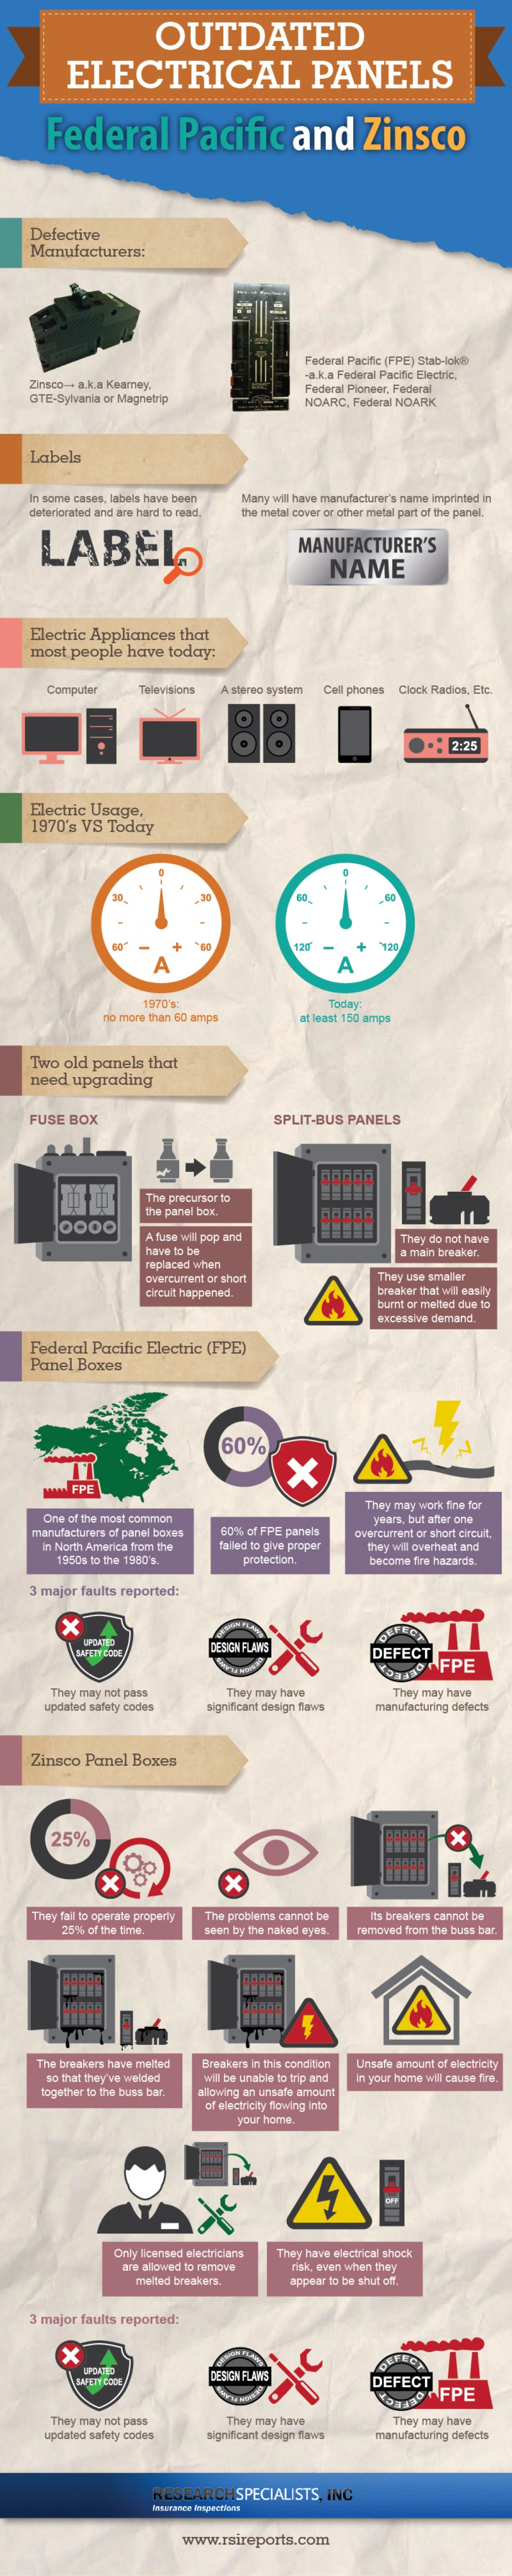 medium resolution of outdated electrical panels infographic